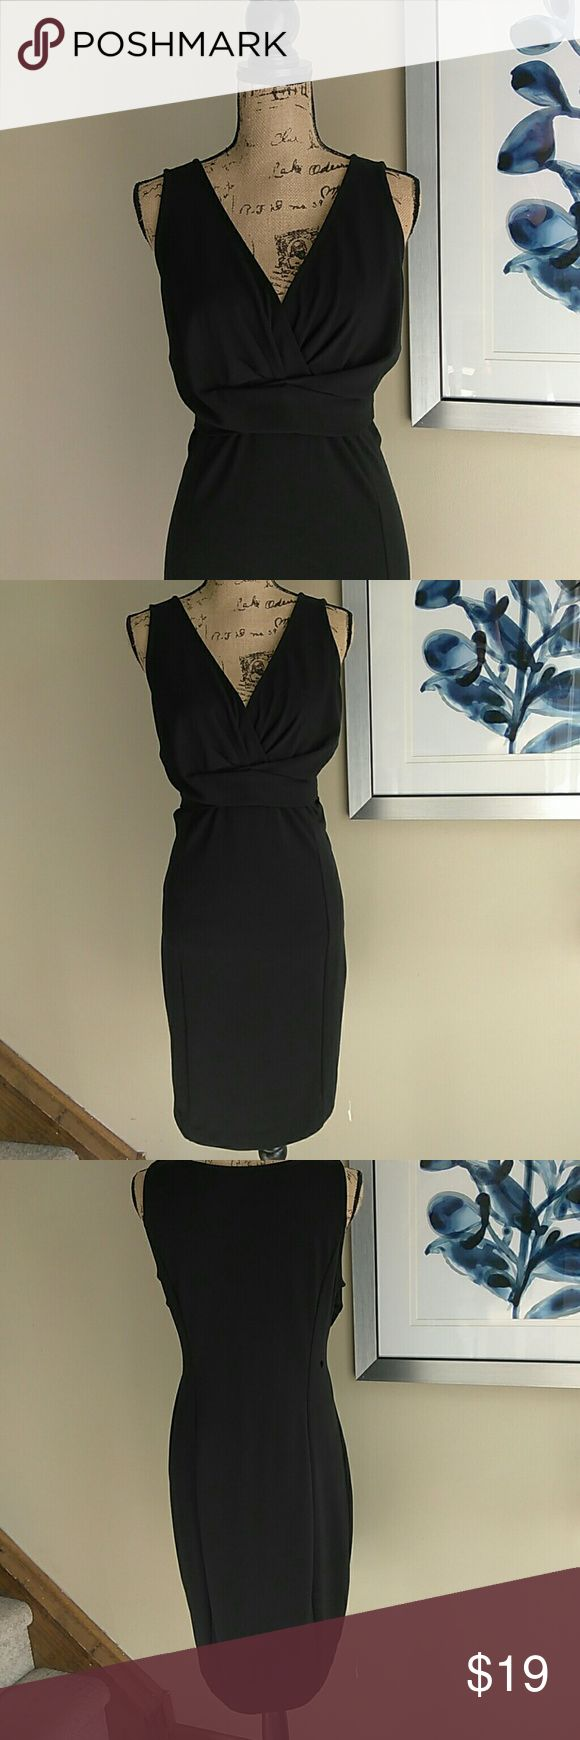 Sexy Little Black Dress Size Large LBD Daisy Fuentes Sexy Little Black Dress. Size Large. Sexy LBD. Sleeveless black dress. Cute gather detail under burst to flatter your tummy & give you a sleek silhouette. In amazing condition! No stains, rips, tears, or holes. Feel free to ask any questions. MAKE ME AN OFFER! FREE GIFT with every purchase! Bundle for further discounts. Daisy Fuentes Dresses